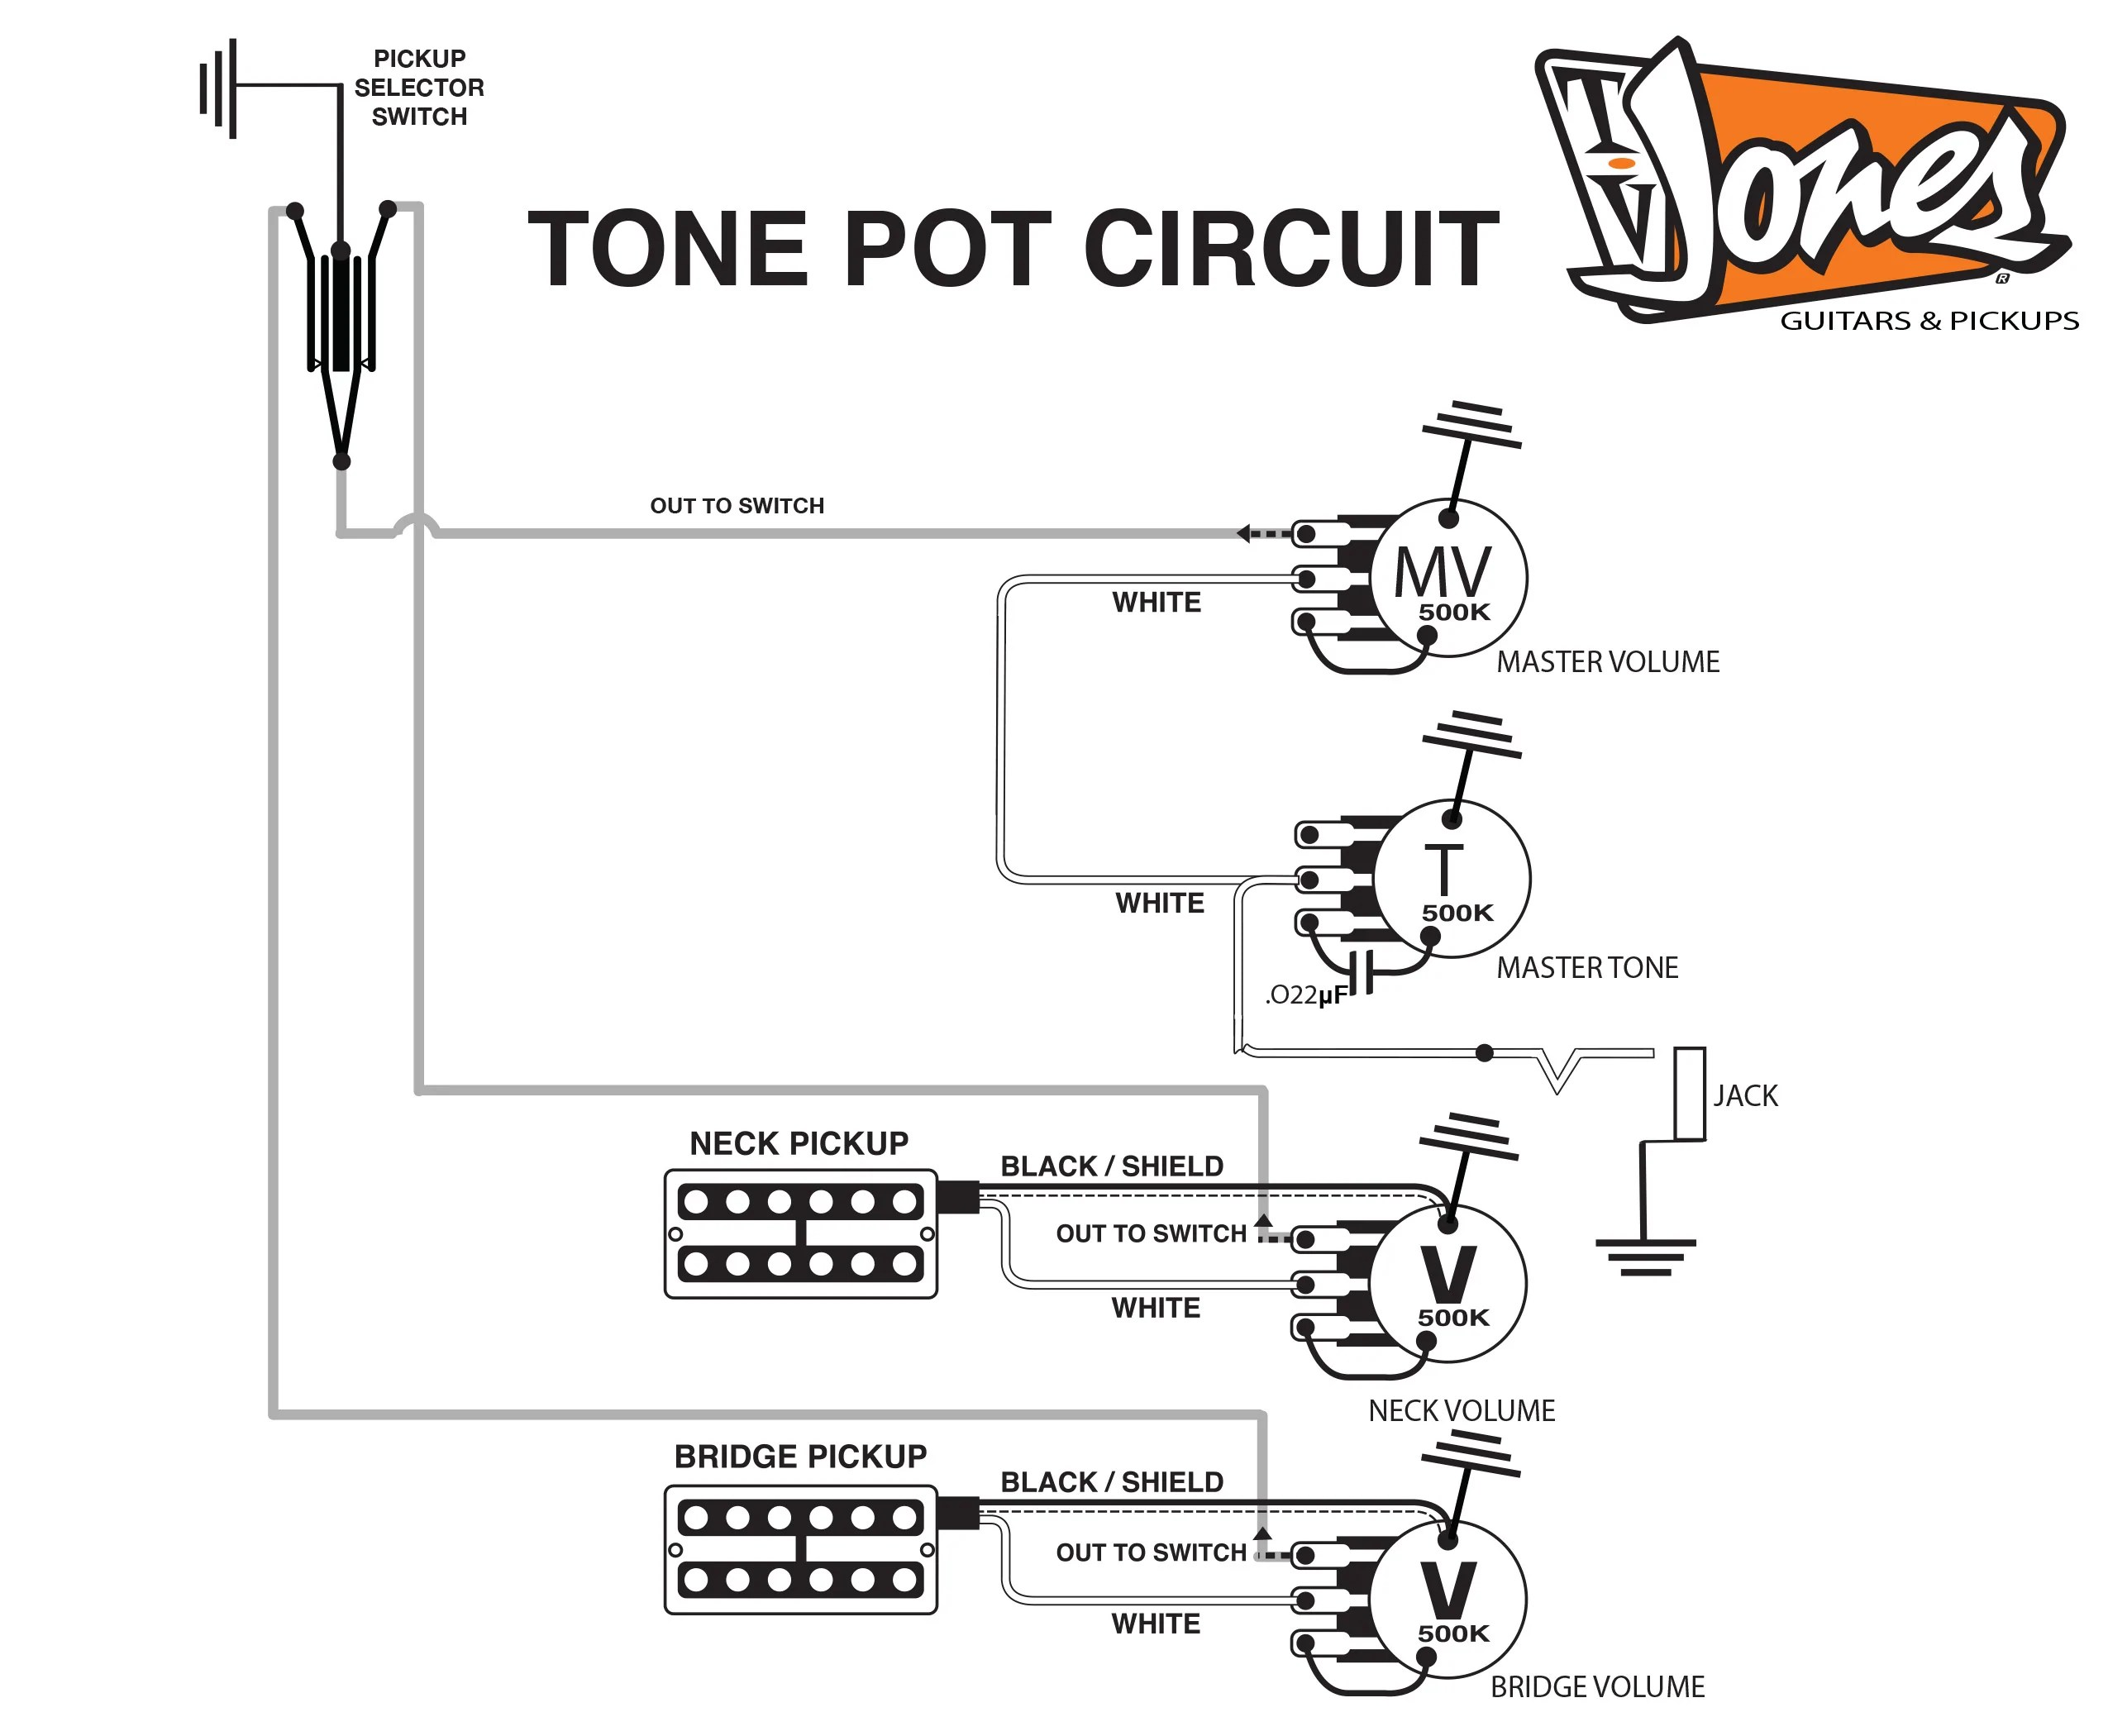 gretsch g5120 wiring diagram